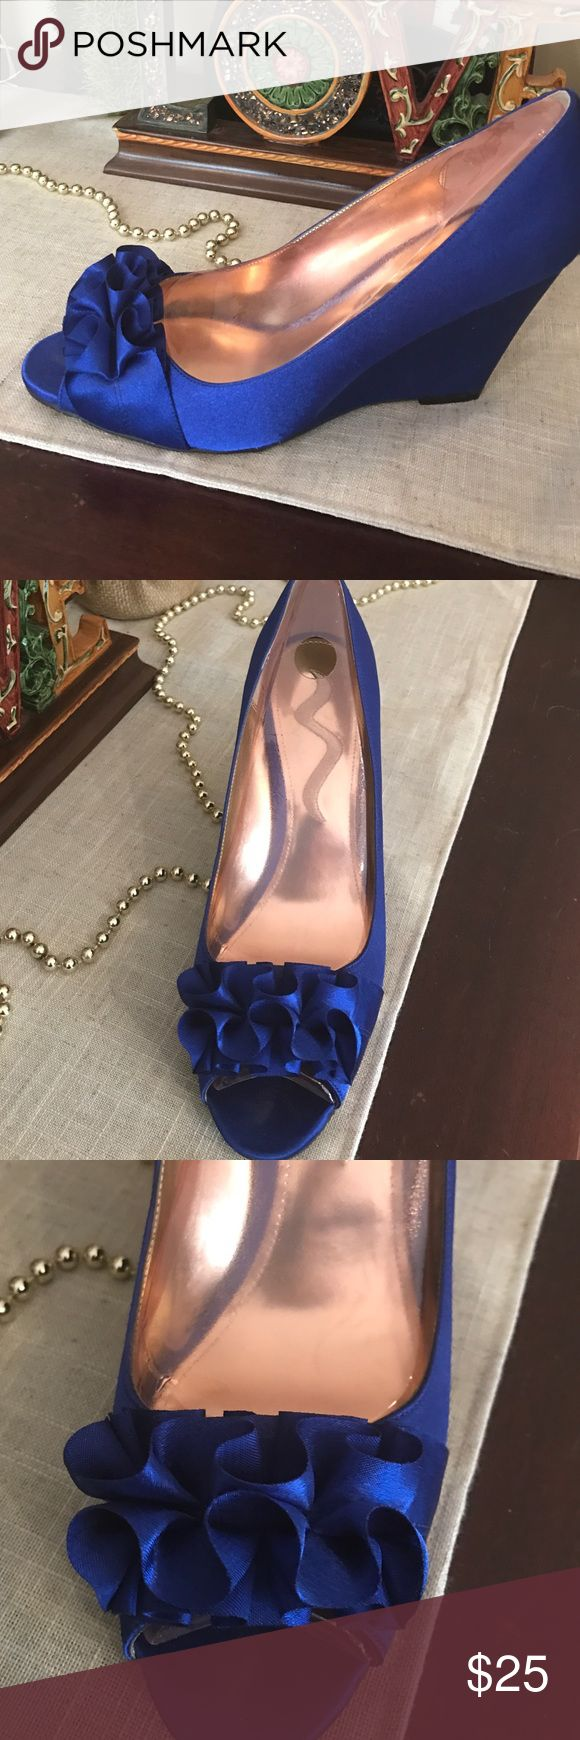 Beautiful Nina satin royal blue shoes Royal blue satiny, wedge heel shoe. Ruffle embellishment at peep toe.  Only worn once! Nina Shoes Wedges